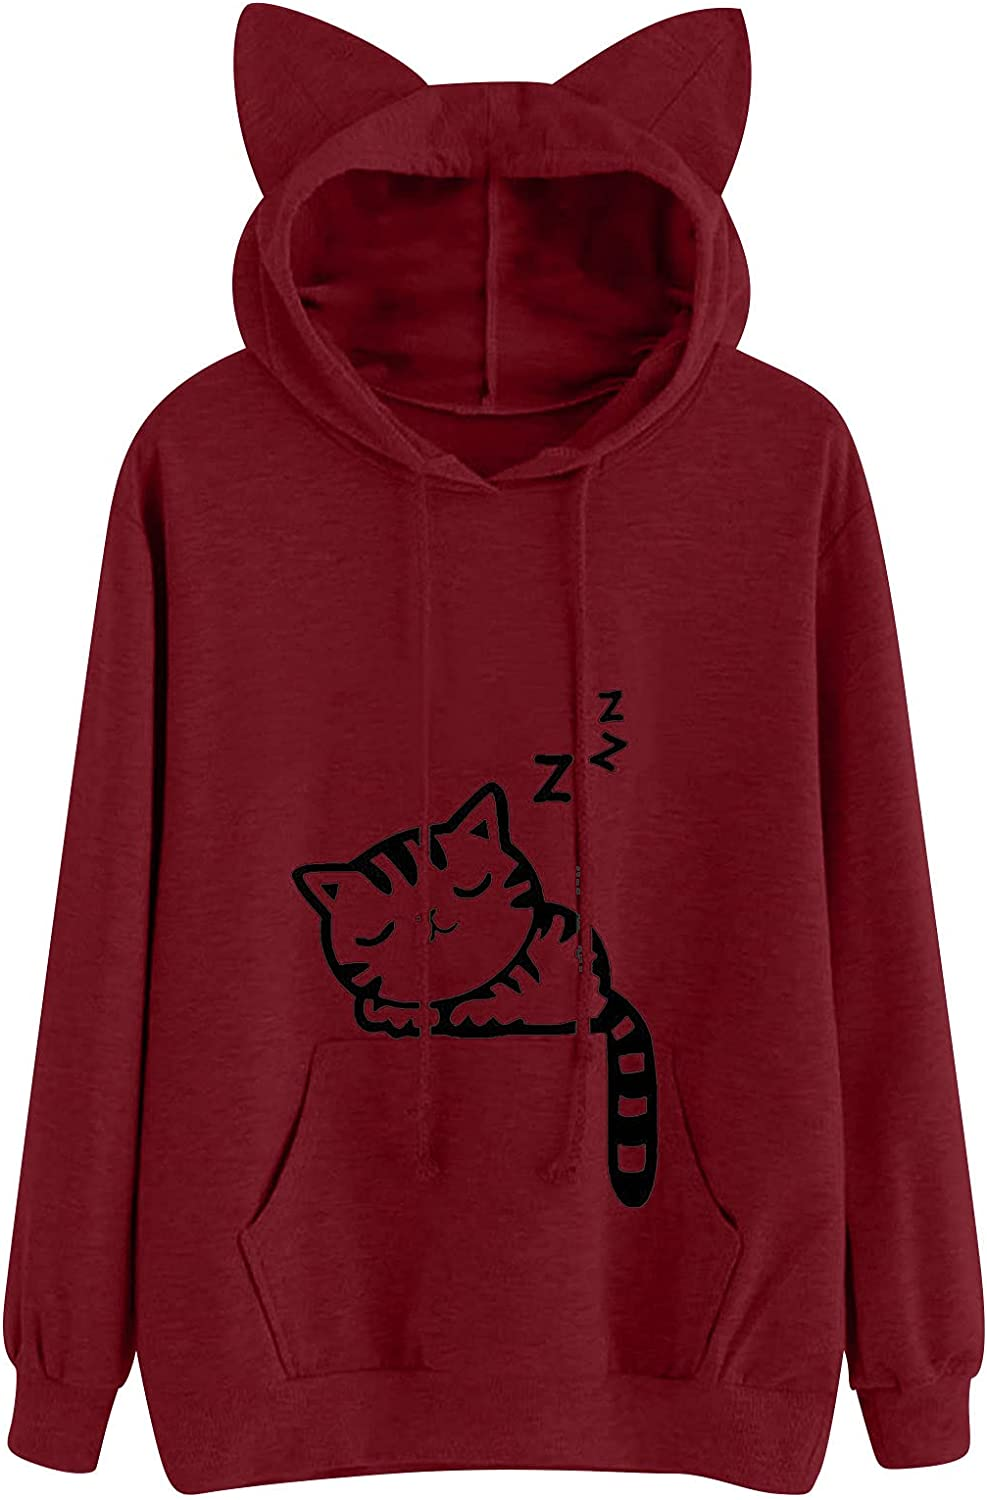 Bravetoshop Hoodies for Women Cat Pullover Outlet SALE Free shipping Ears Cute